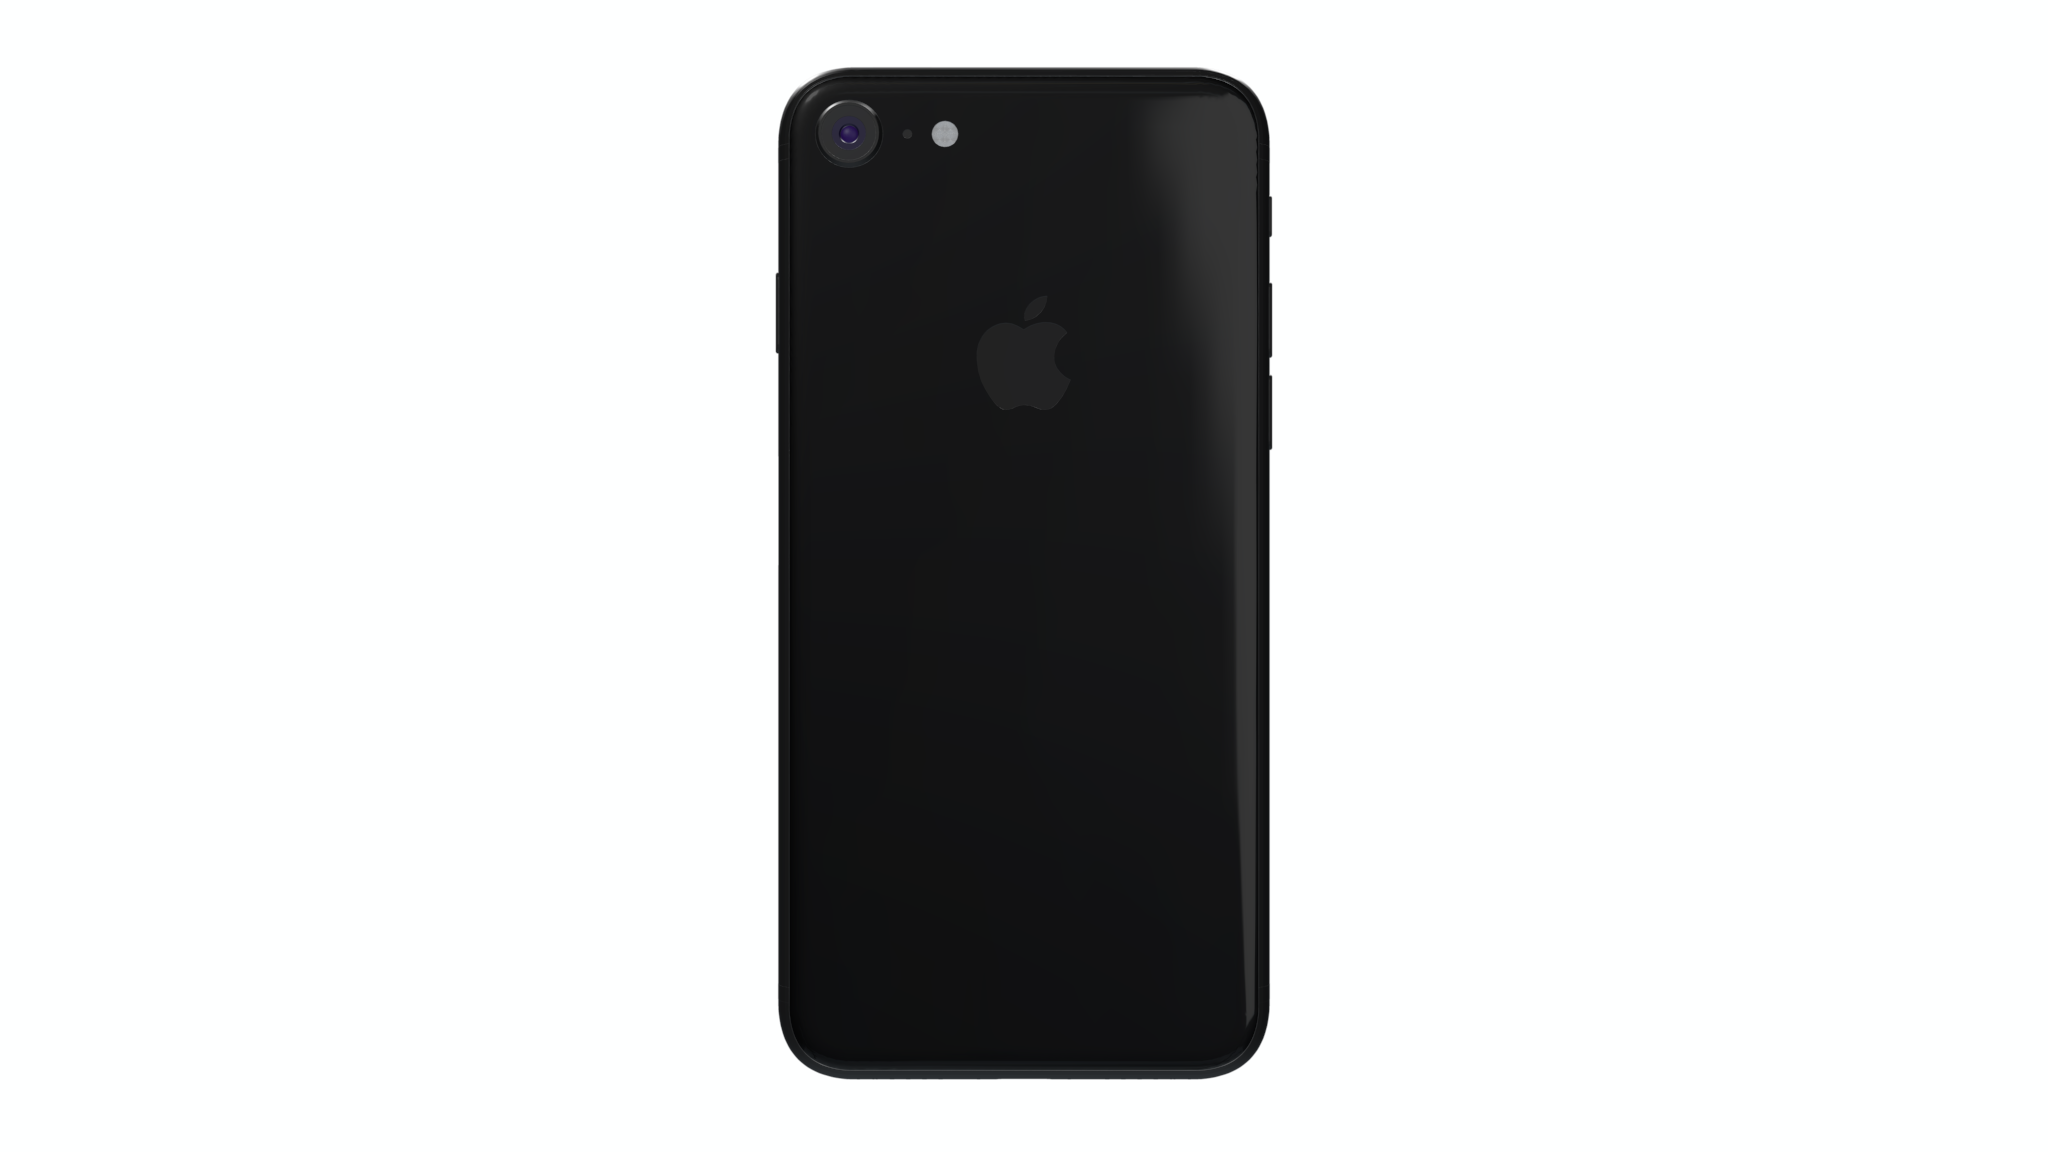 iPhone 8 mockup from back